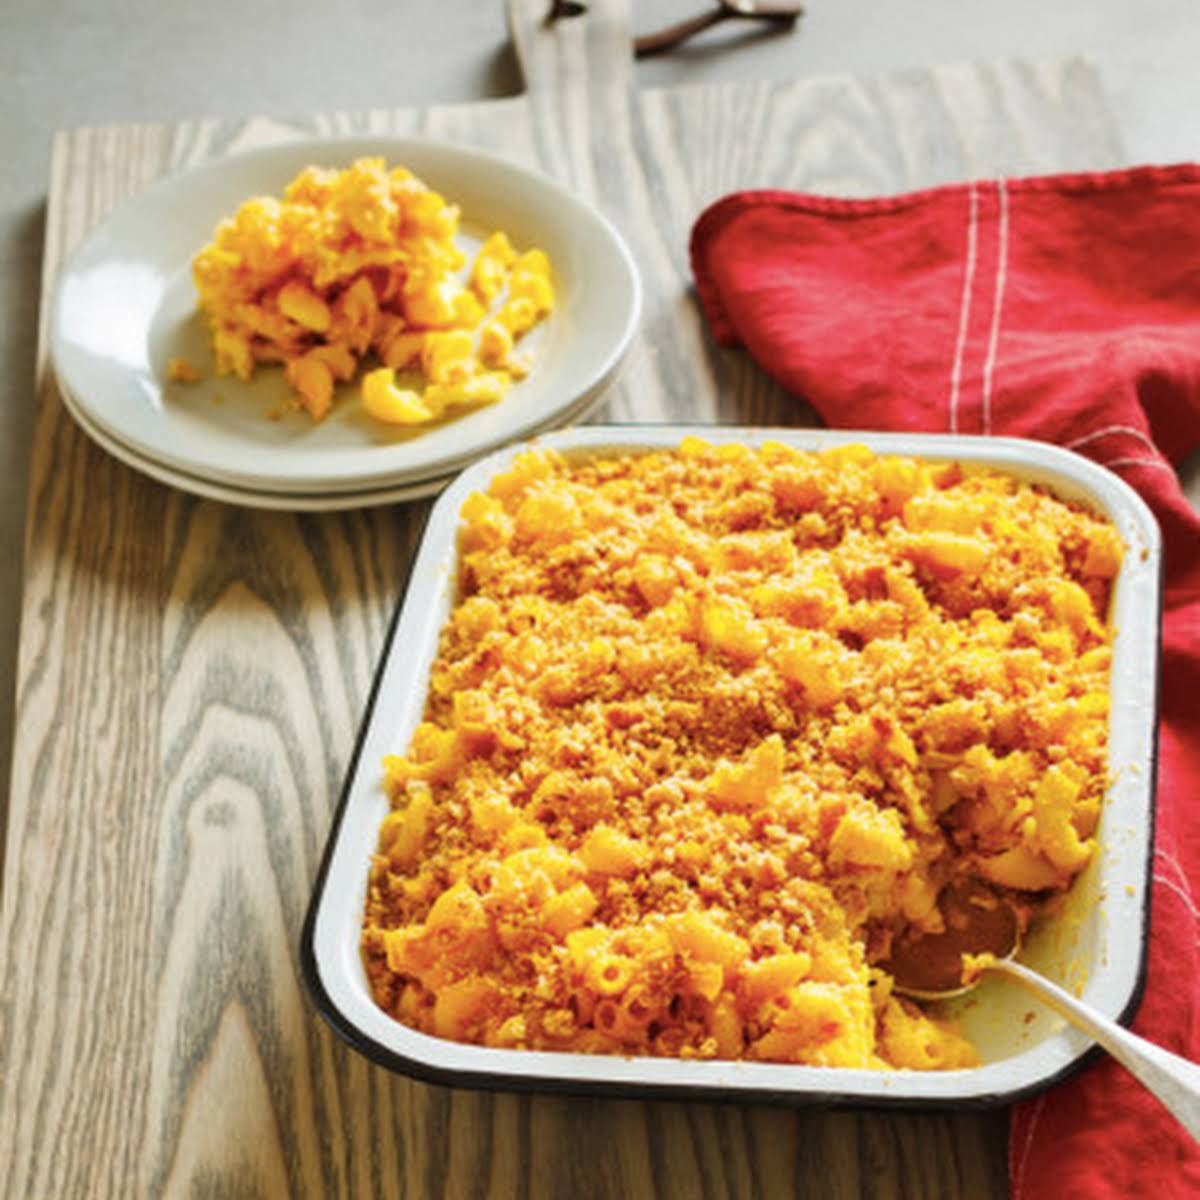 Beauty Food - Paired, Vegan and Gluten - Free Mac N Cheese